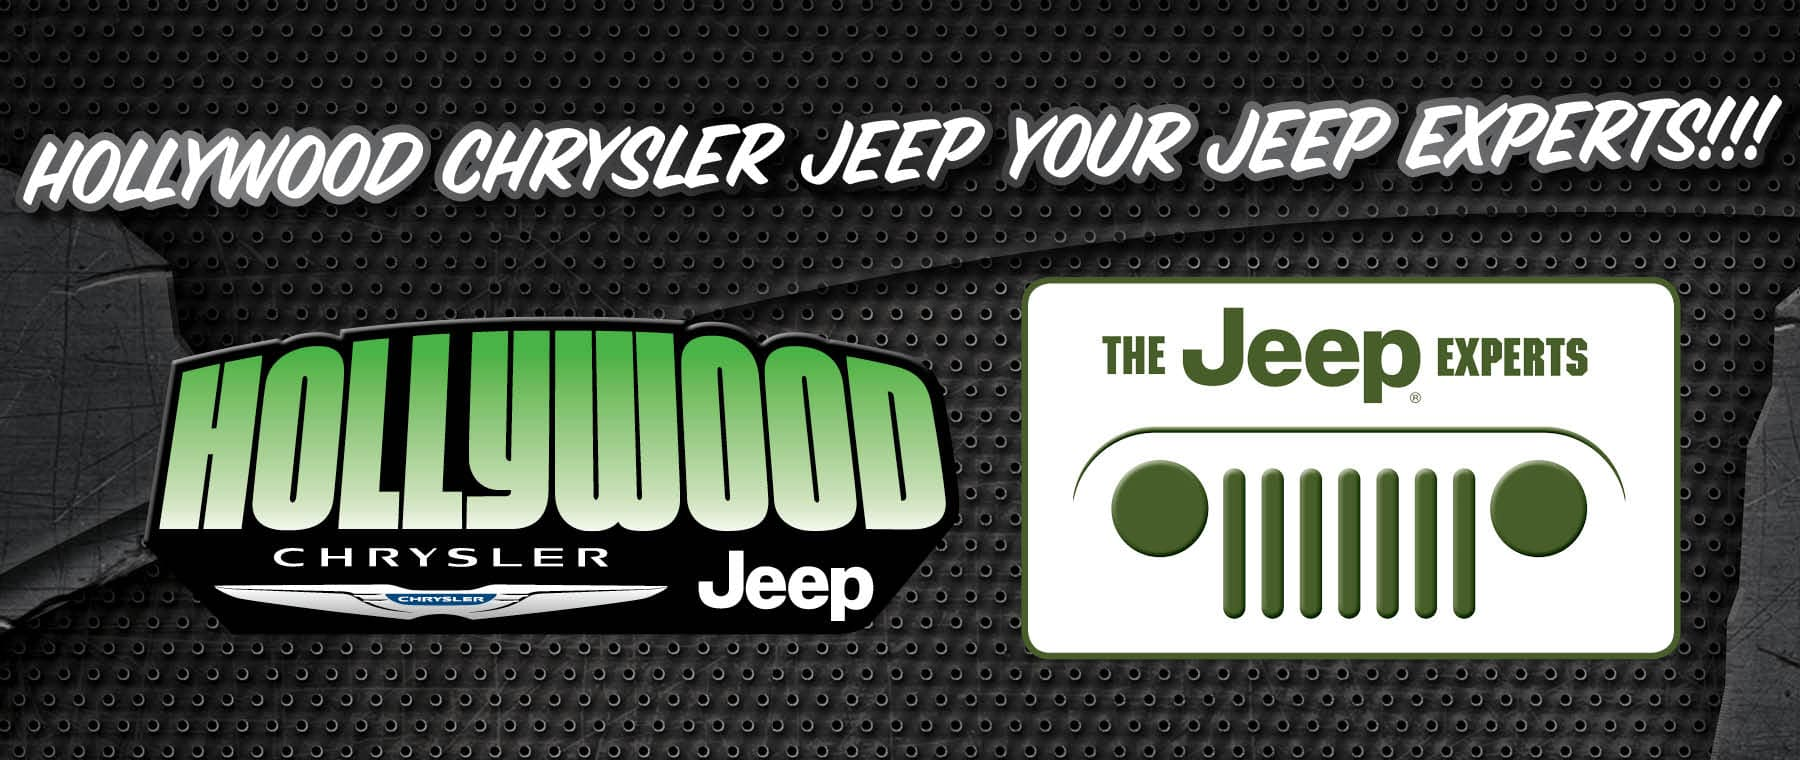 HCJ Your Jeep Experts